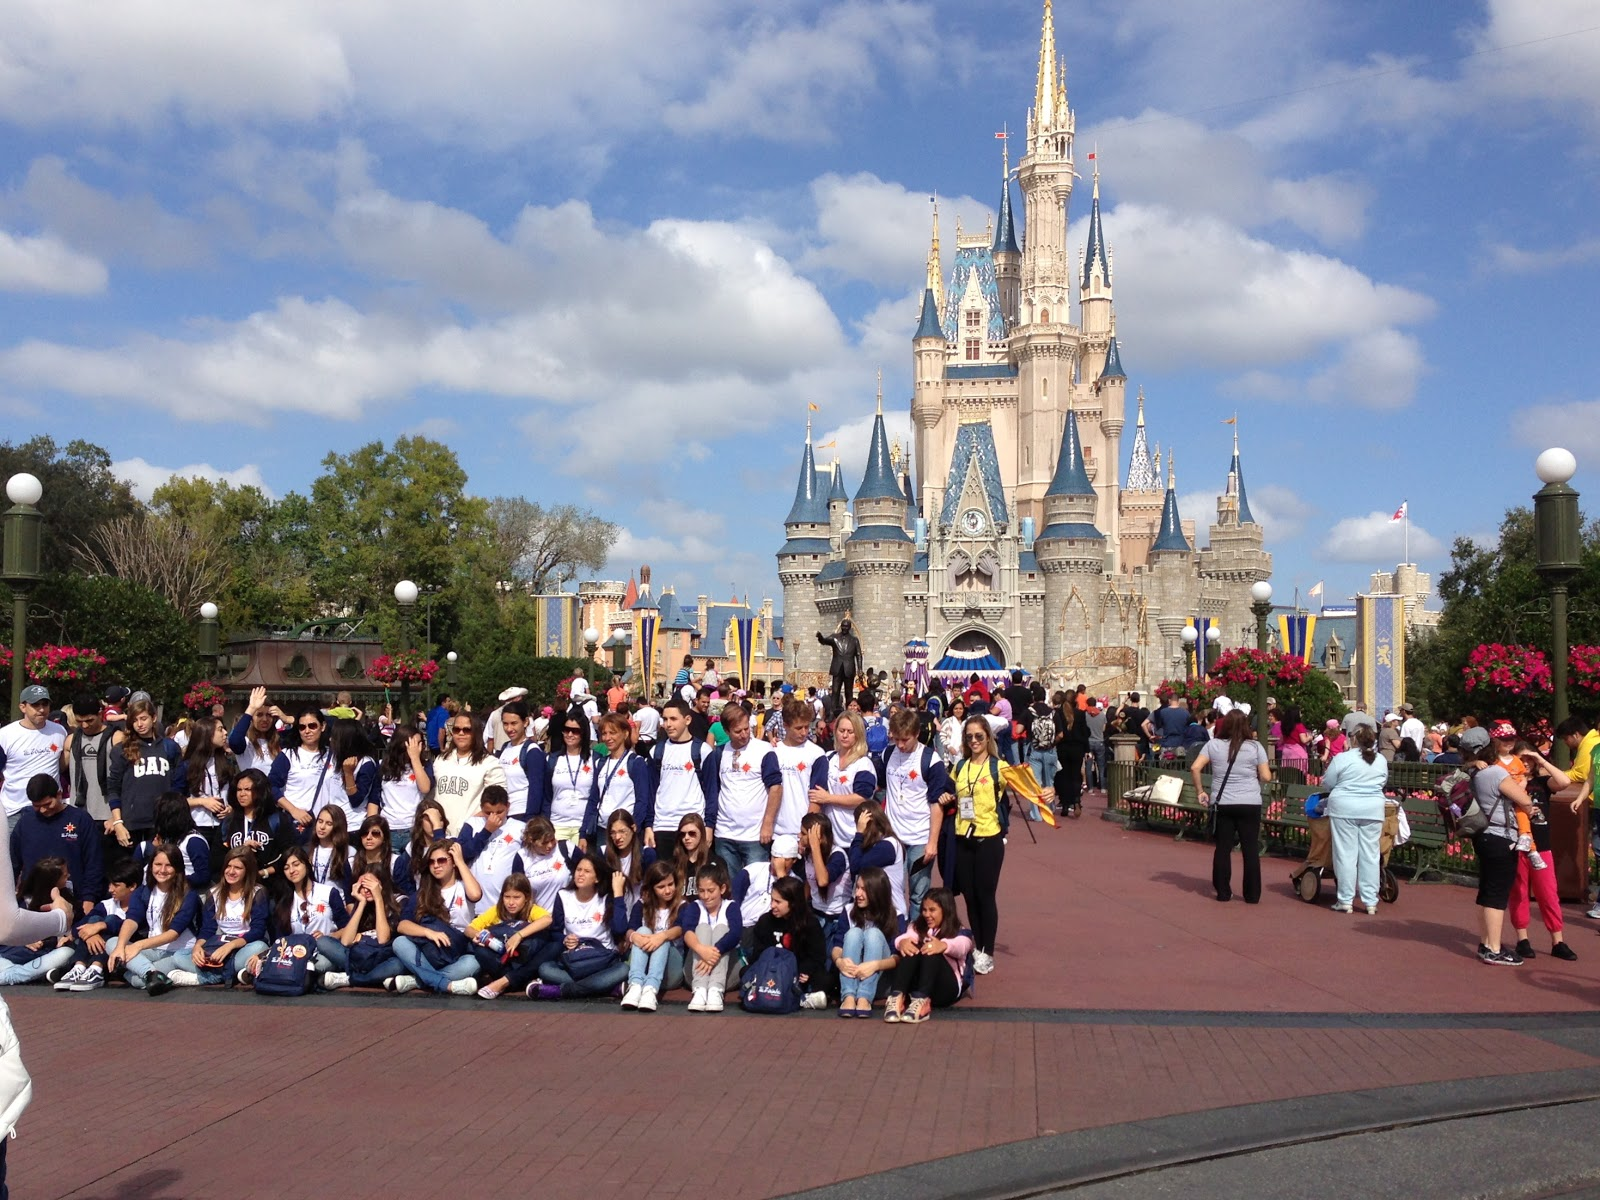 Wdw Guided Tours Blog January 2017